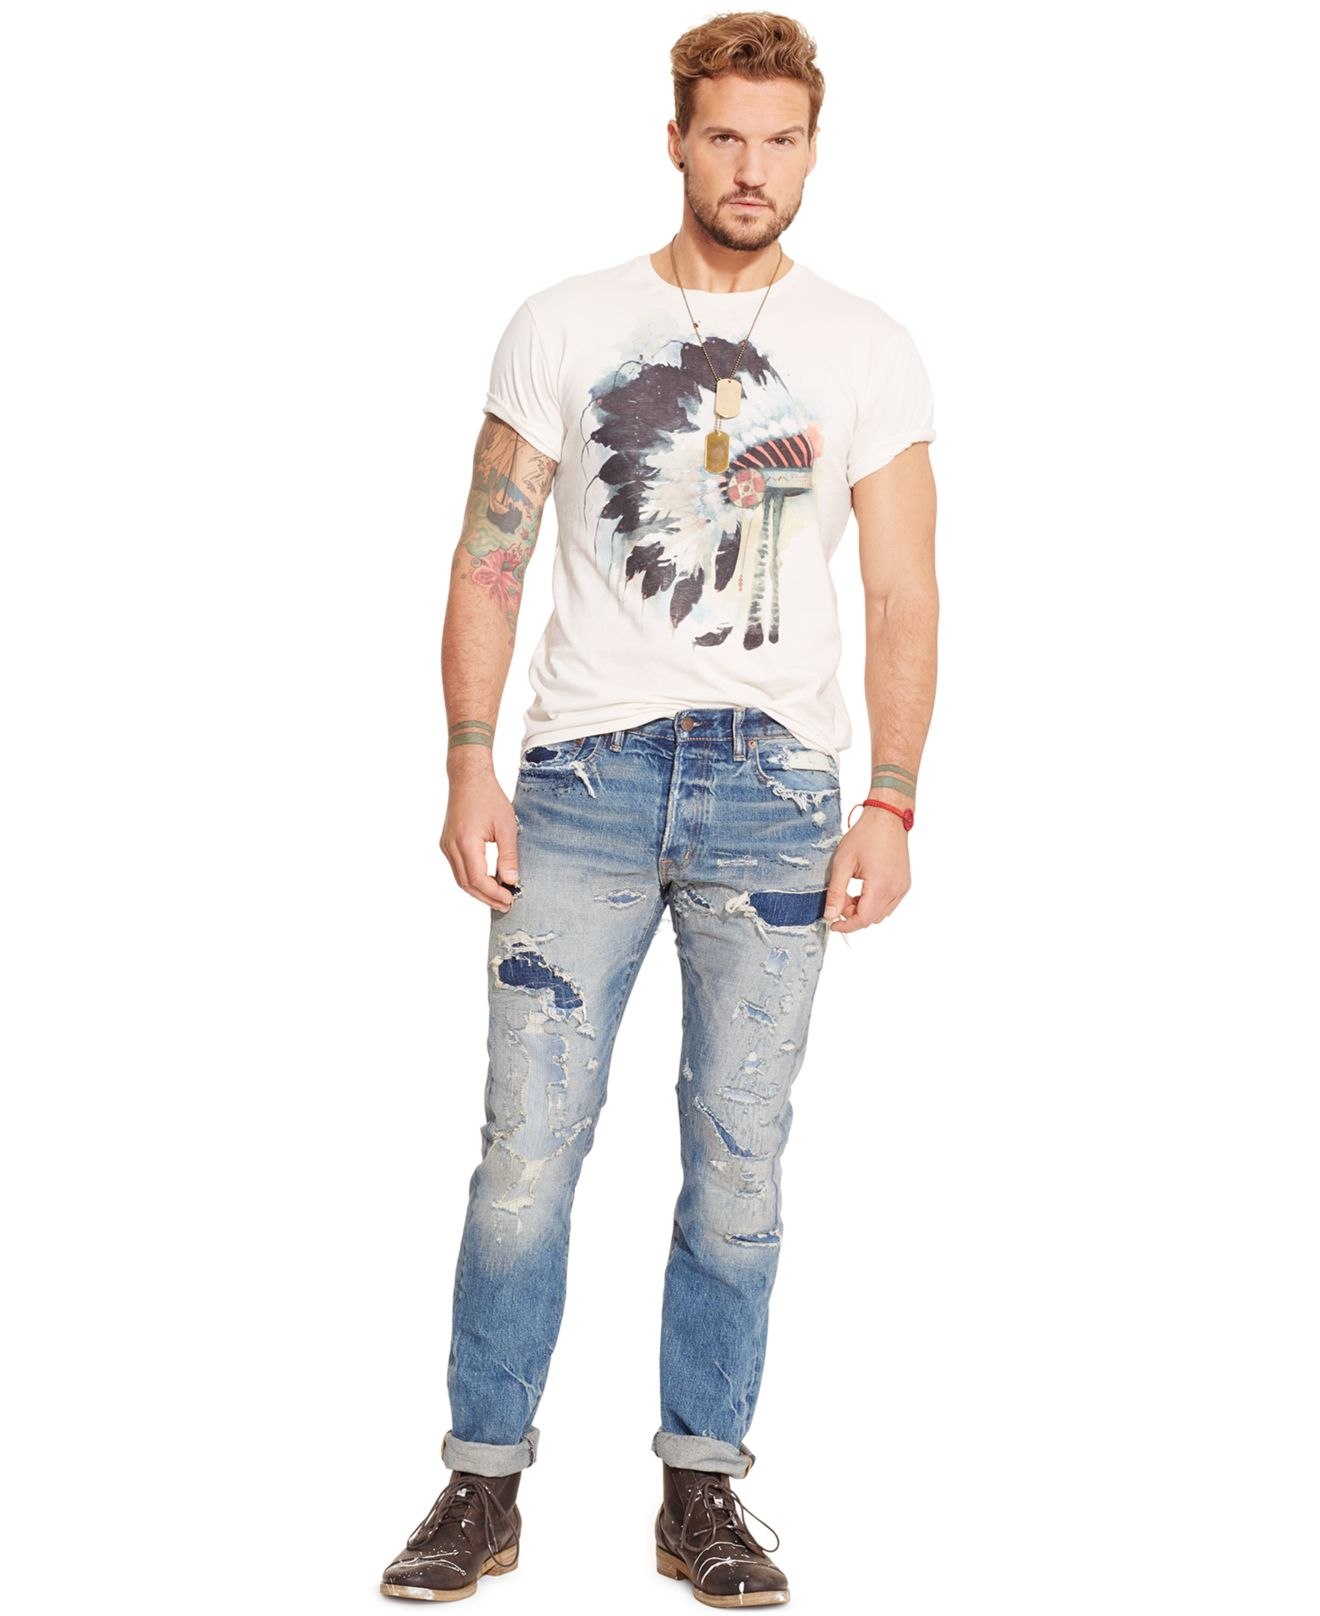 762c924198 Lyst - Denim   Supply Ralph Lauren Watercolor Graphic T-shirt in ...